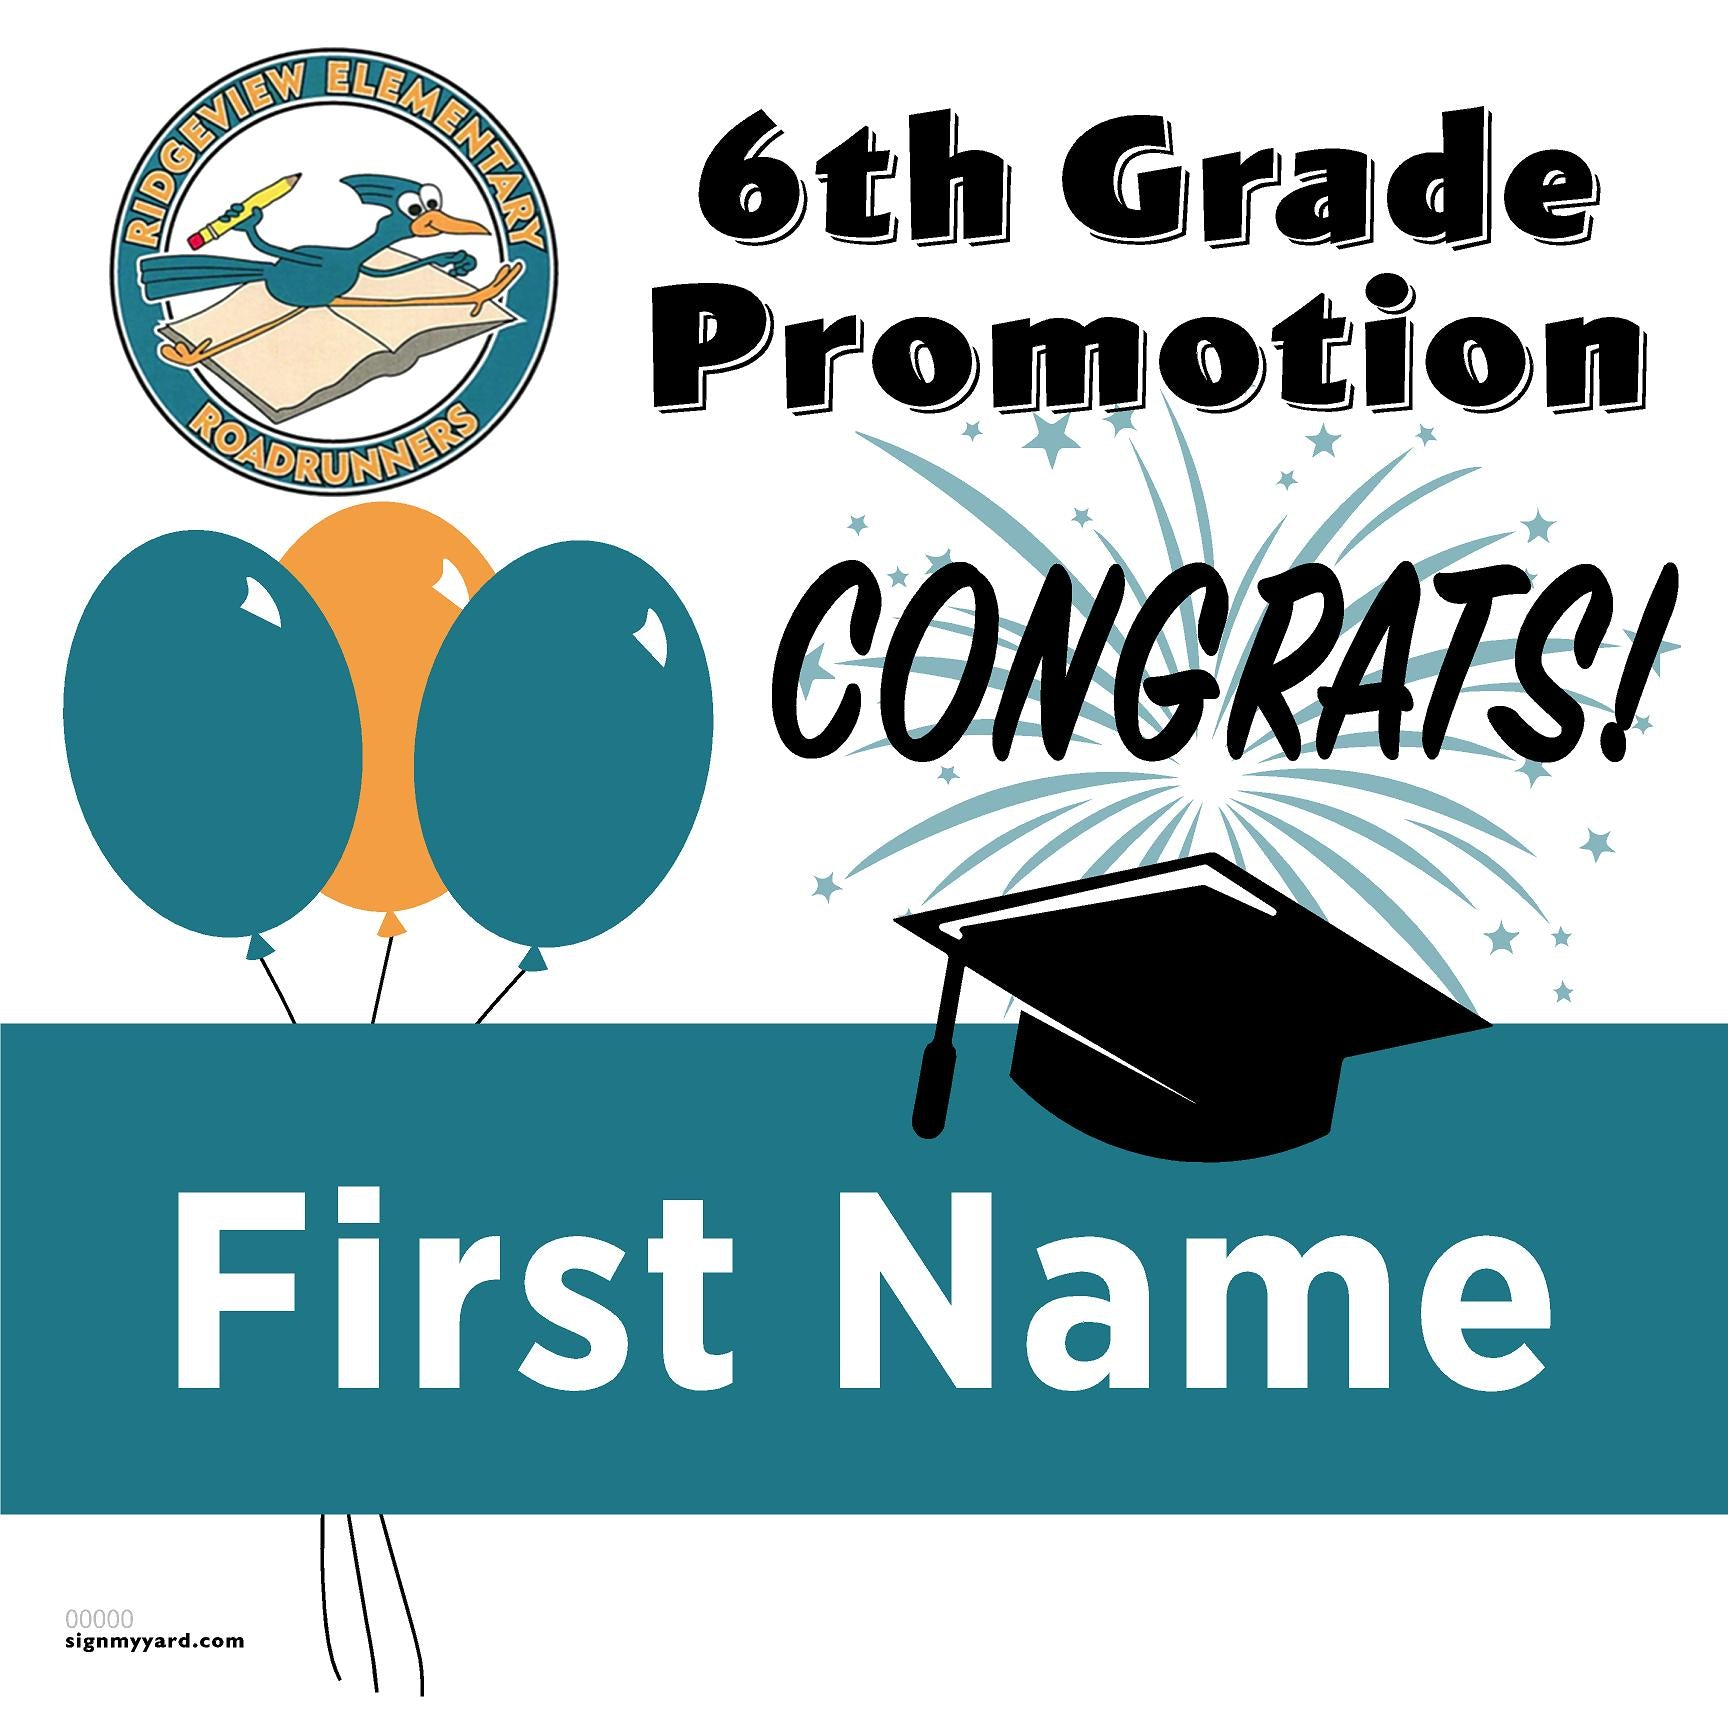 Rideview Elementary School 5th Grade Promotion 24x24 #shineon2027 Yard Sign (Option A)